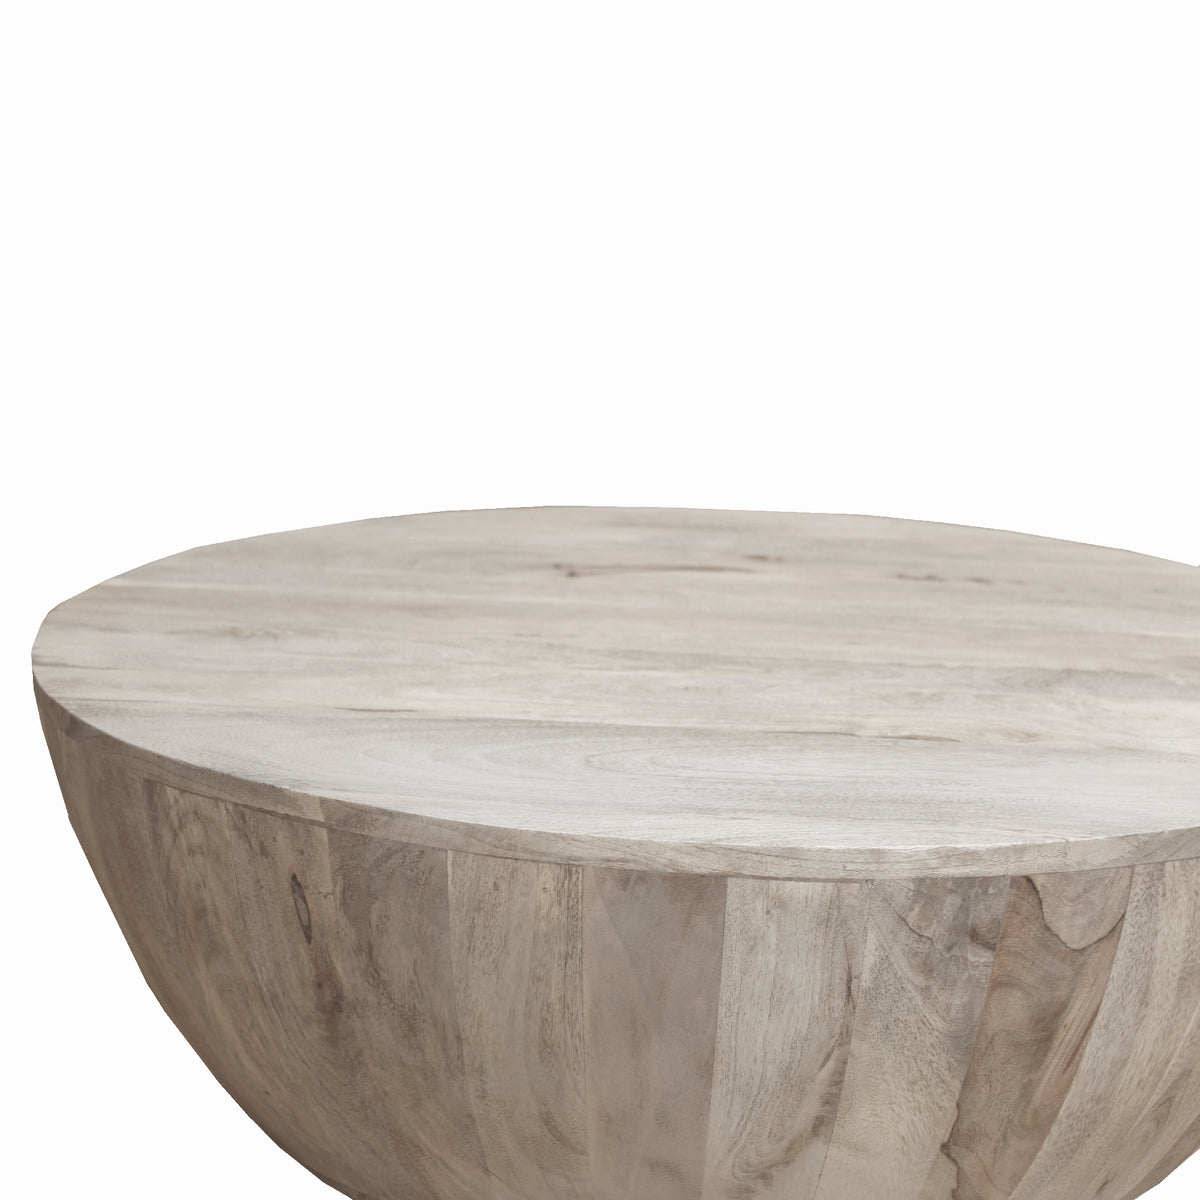 Light Colored Wood Coffee Table.The Urban Port Distressed Mango Wood Coffee Table In Round Shape